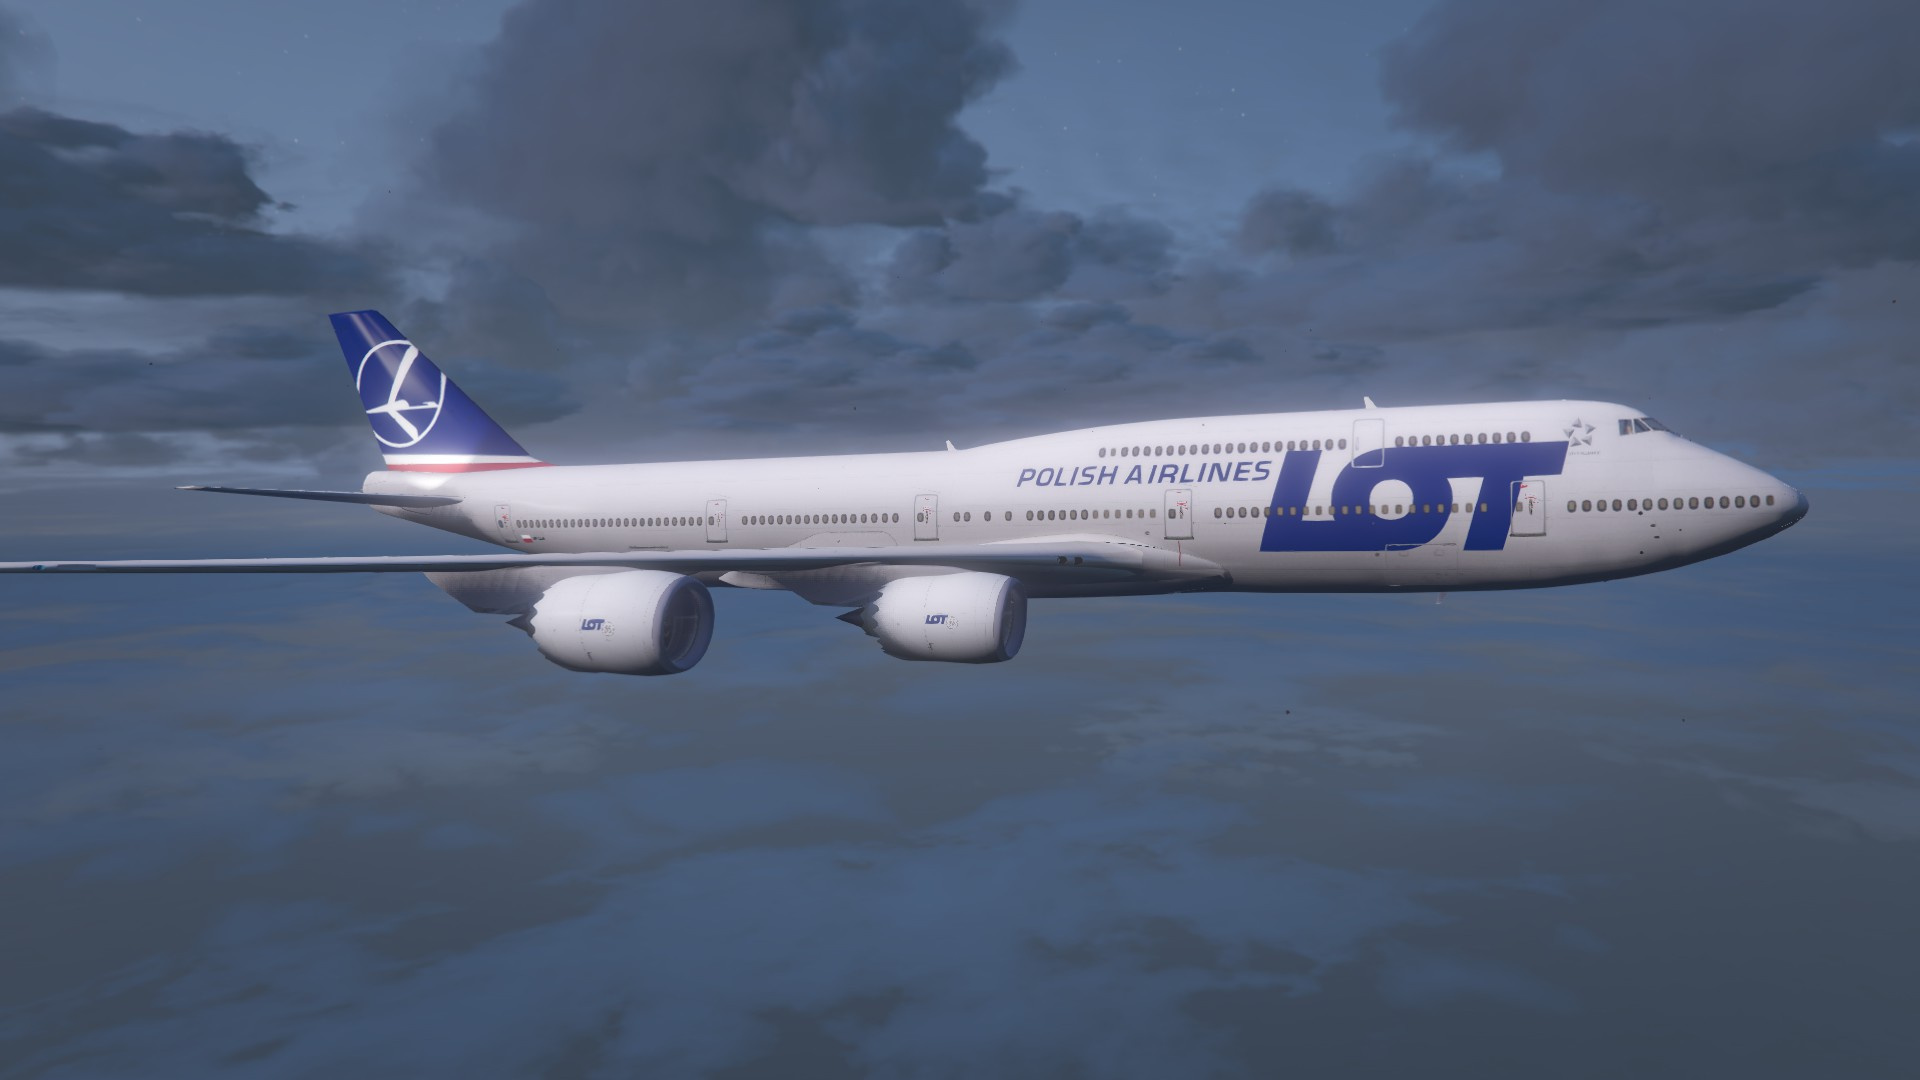 lot pack boeing 767 737 727 747 8i and airbus a380 a330 and